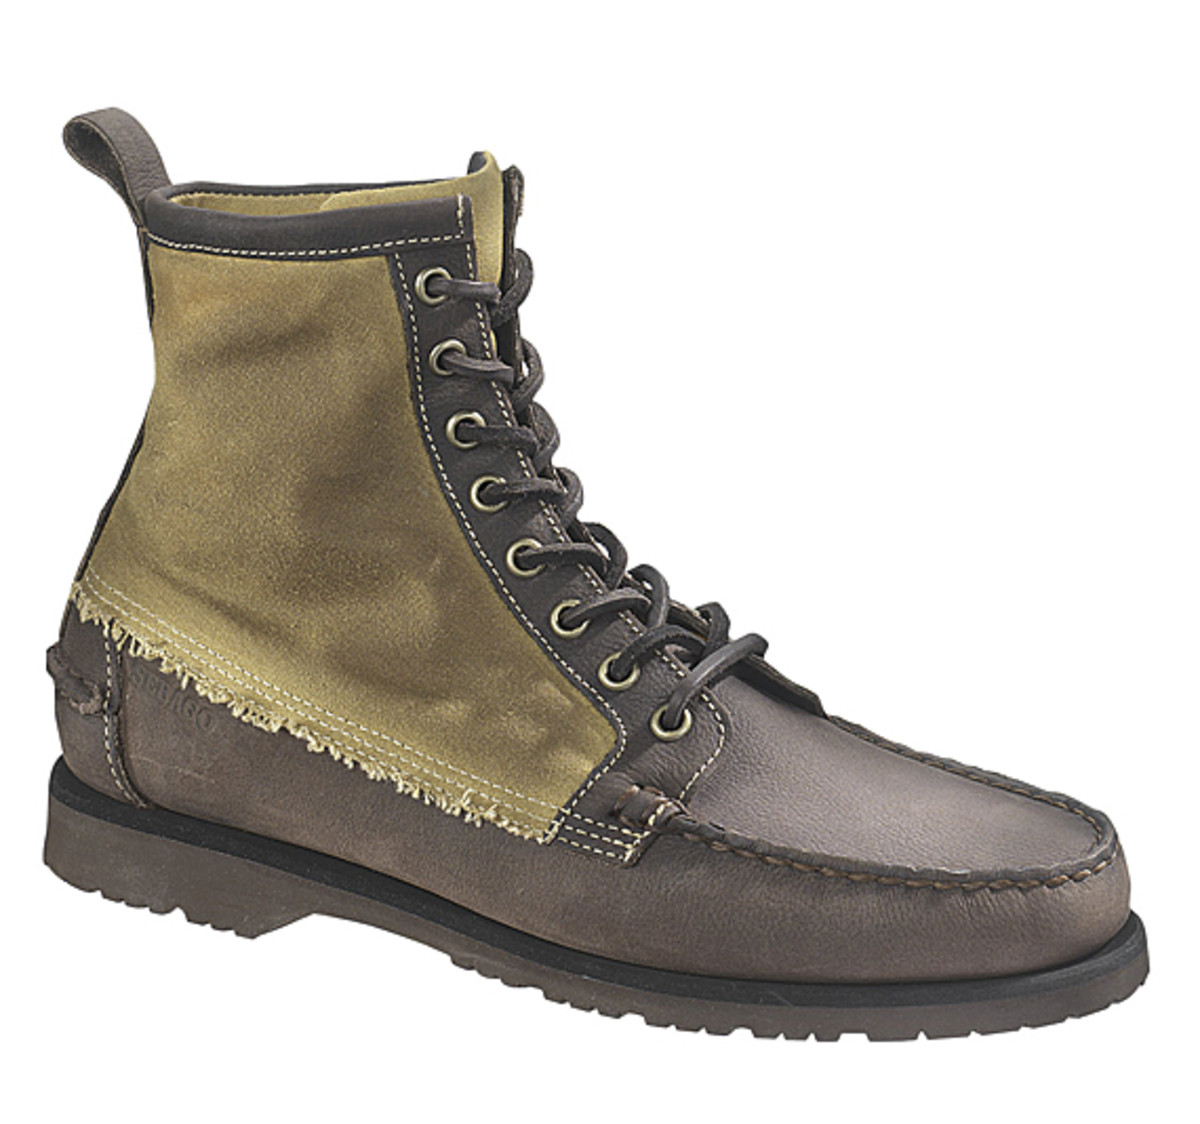 filson-sebago-capsule-collection-kettle-boots-02